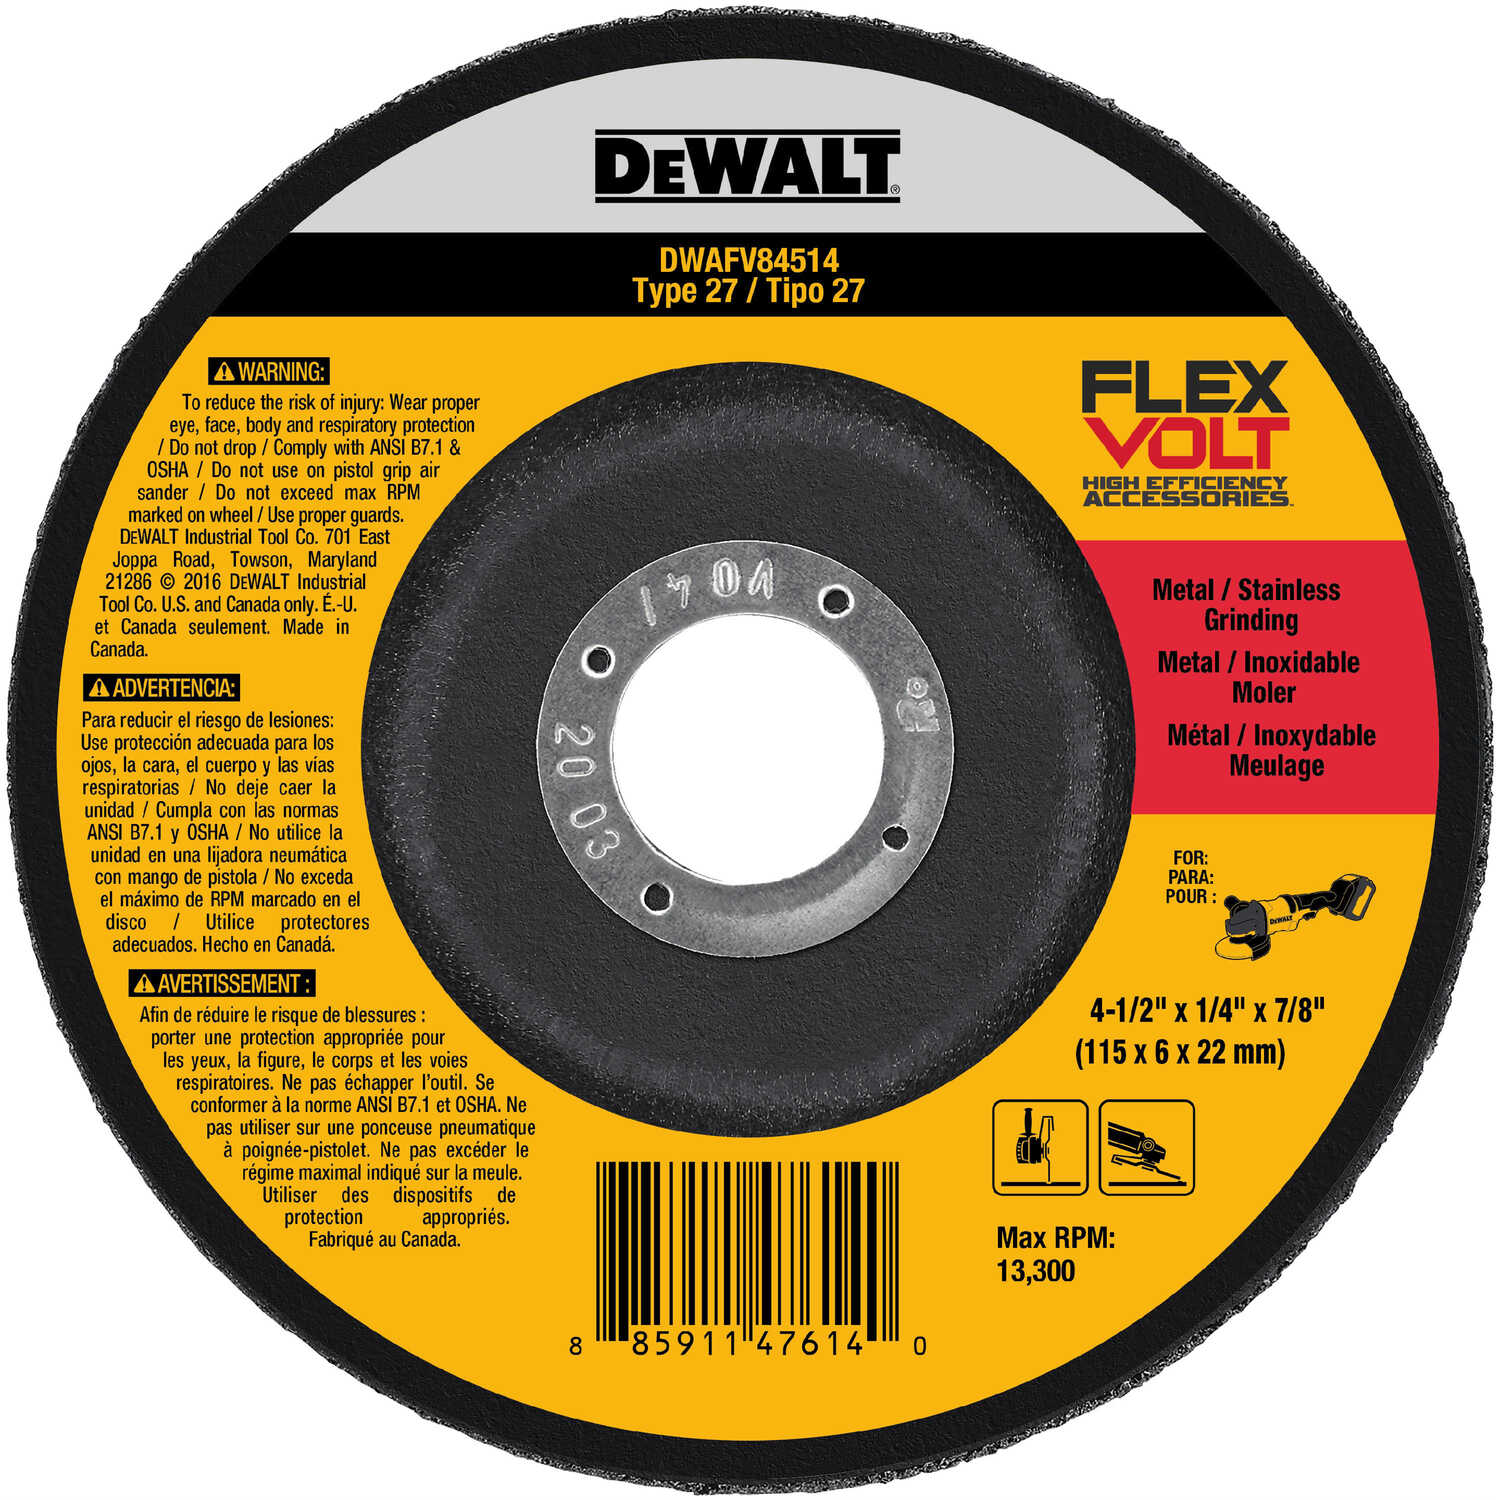 DeWalt  Flexvolt  1/4 in. thick  x 7/8 in.   x 4-1/2 in. Dia. Metal Grinding Wheel  13300 rpm 1 pc.